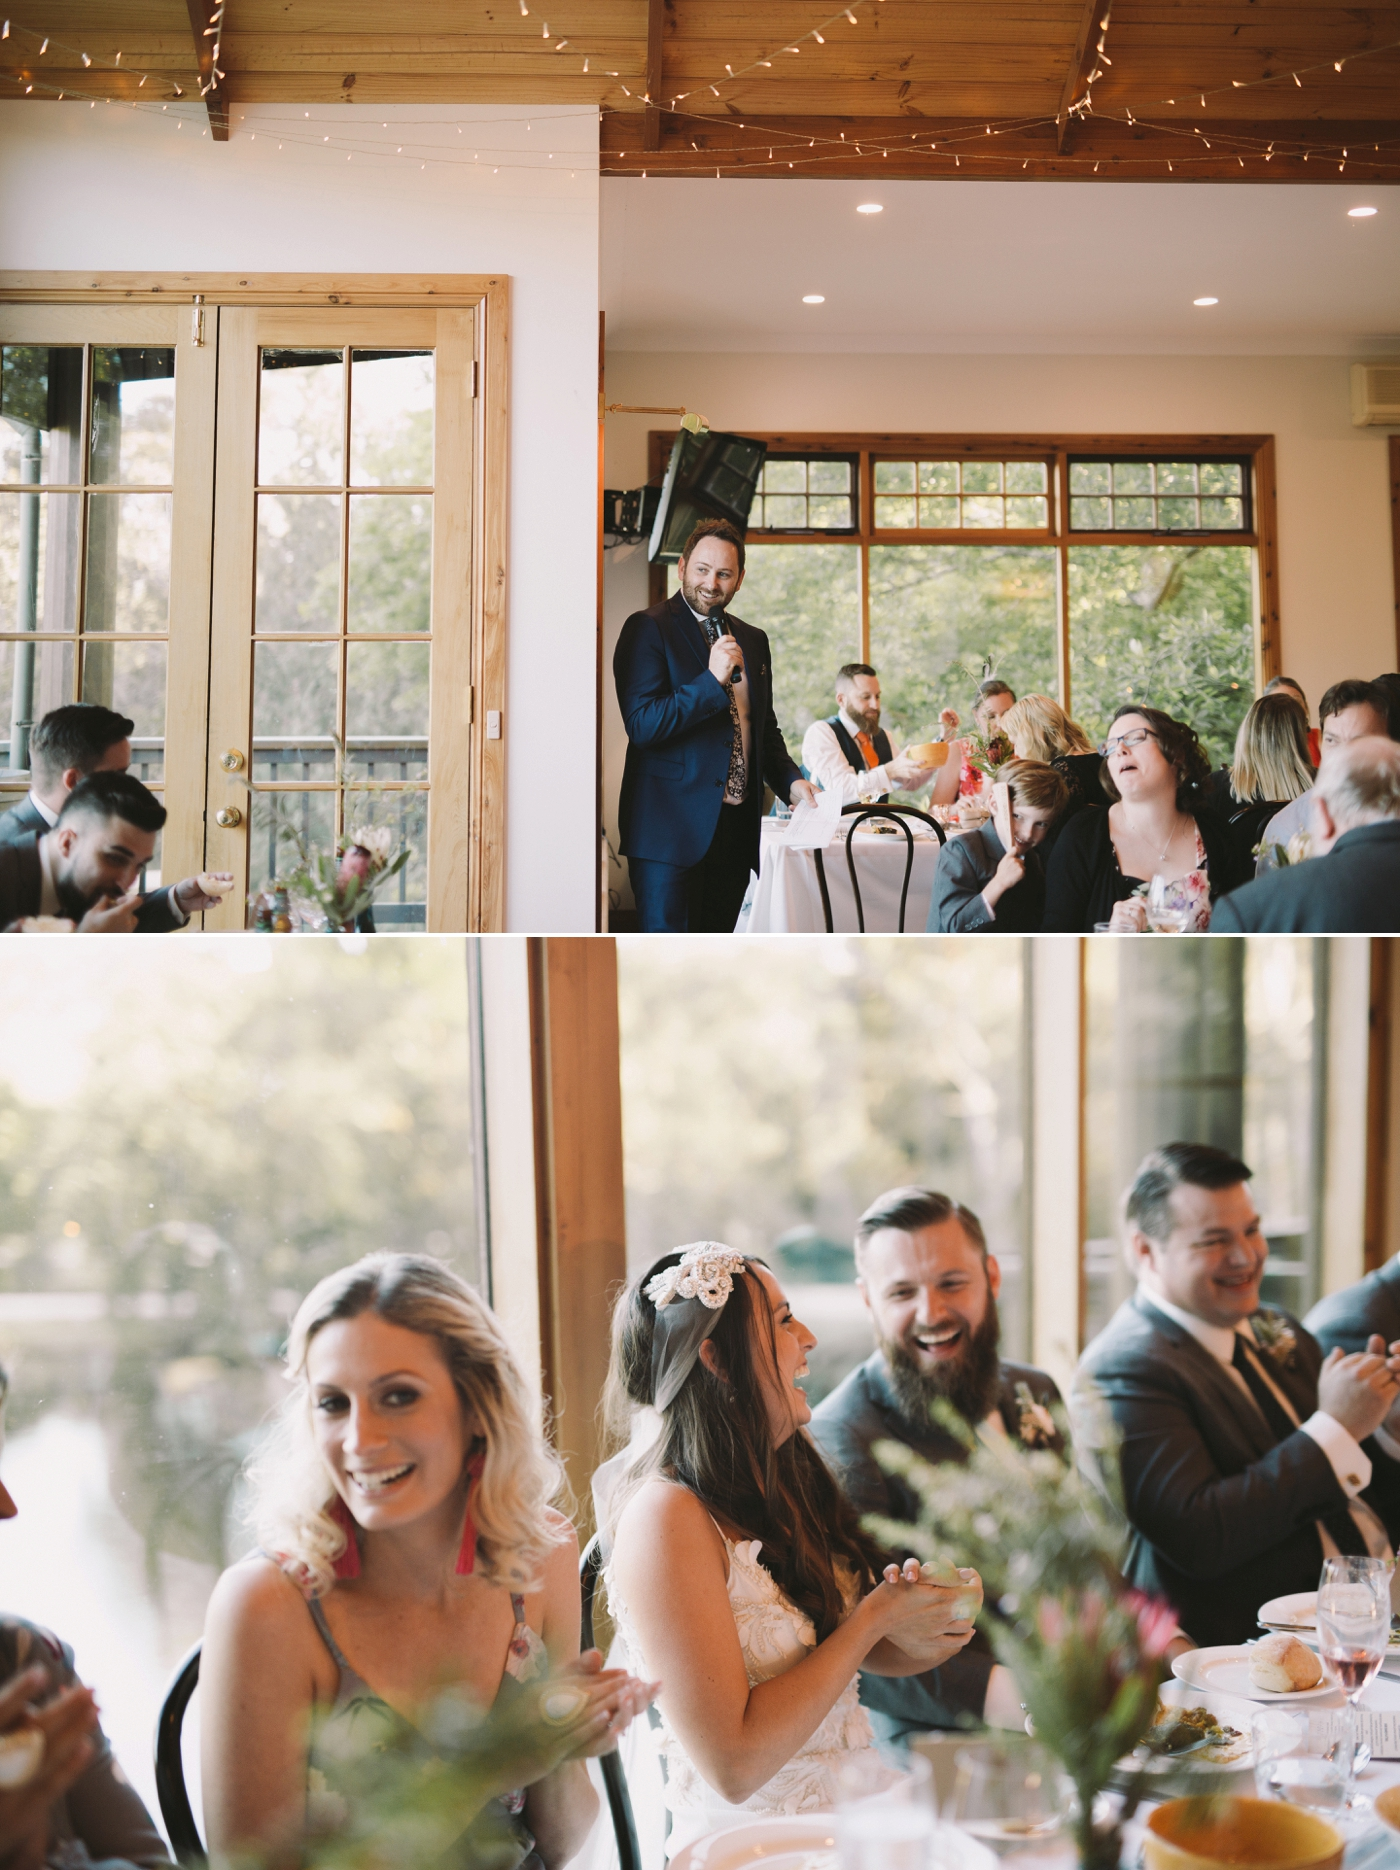 Maddy & Wes - K1 by Geoff Hardy Wedding - Adelaide Wedding Photographer - Natural wedding photography in Adelaide - Katherine Schultz_0055.jpg